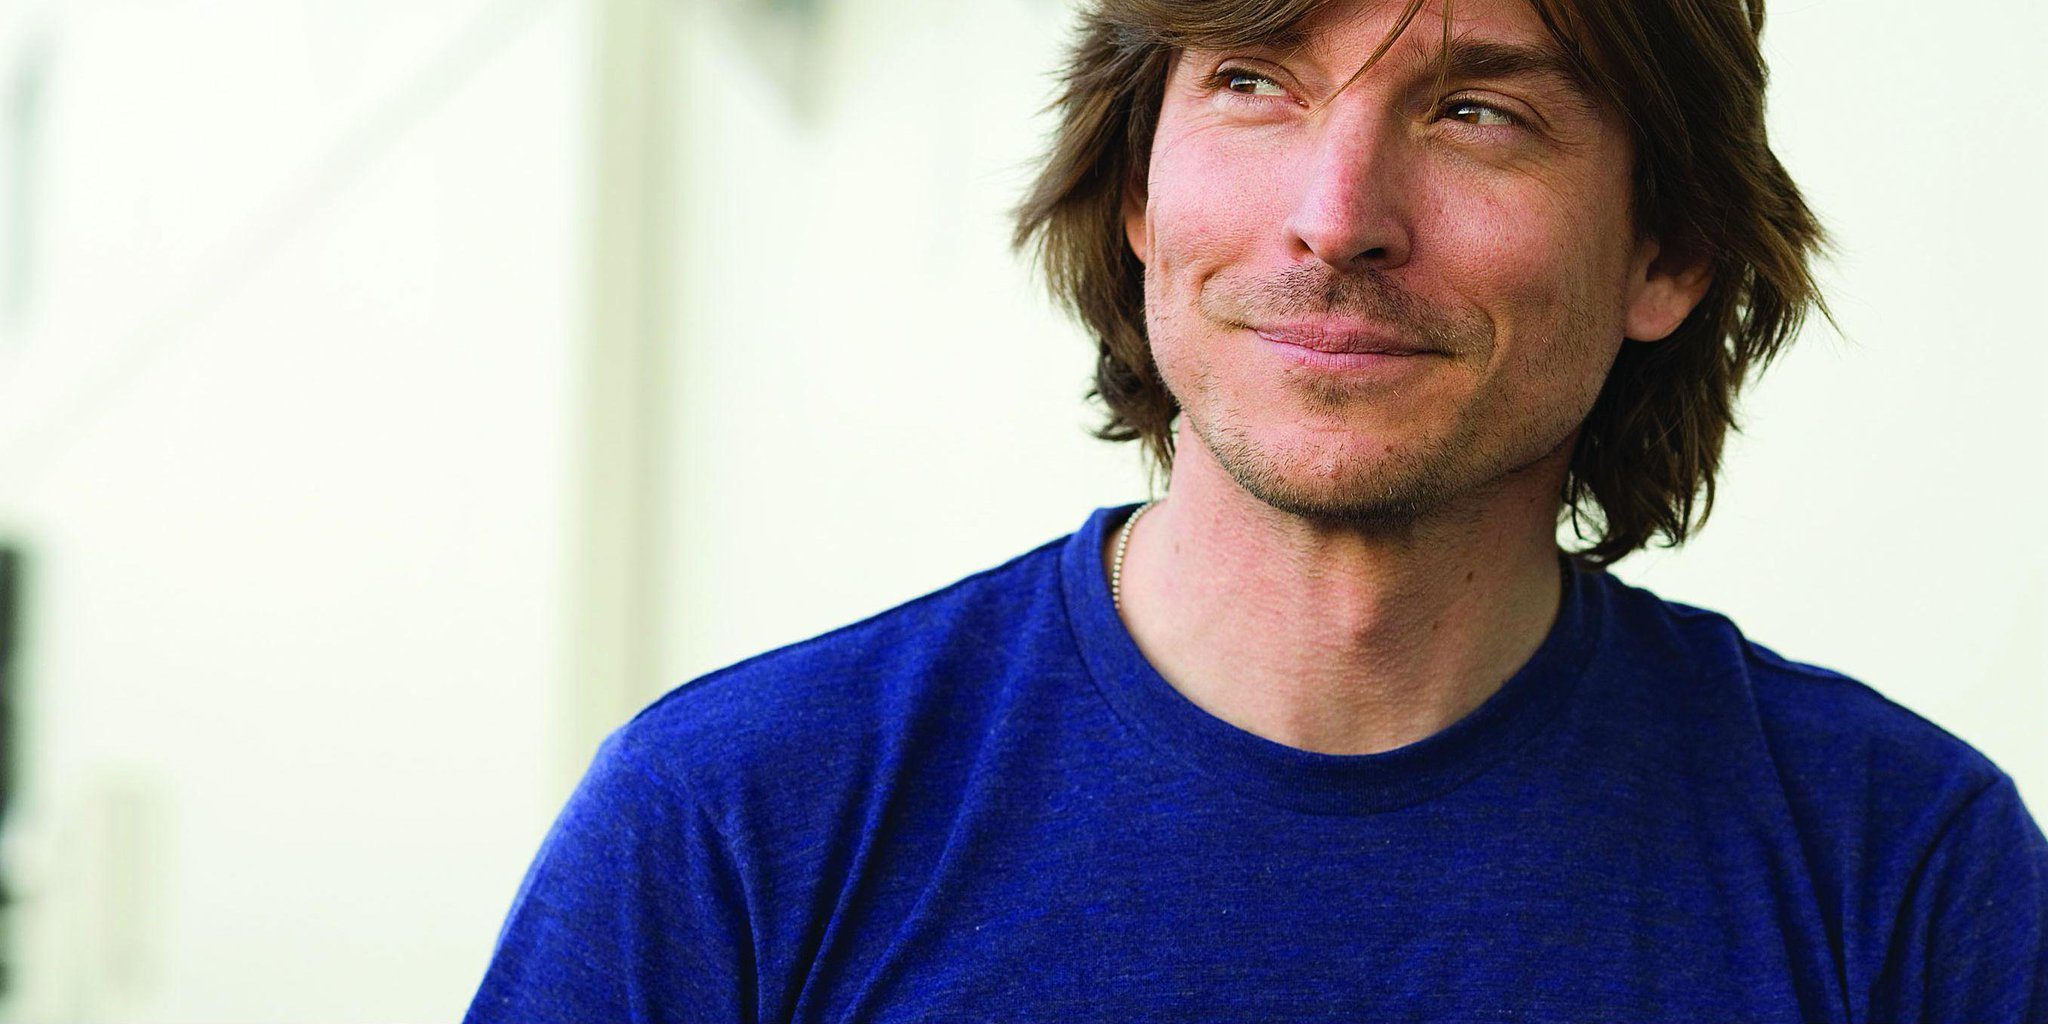 Bogusky's Back -- This Time With a Socially Conscious Agency http://t.co/unBjaVlzKL http://t.co/MqJ6auoJmt